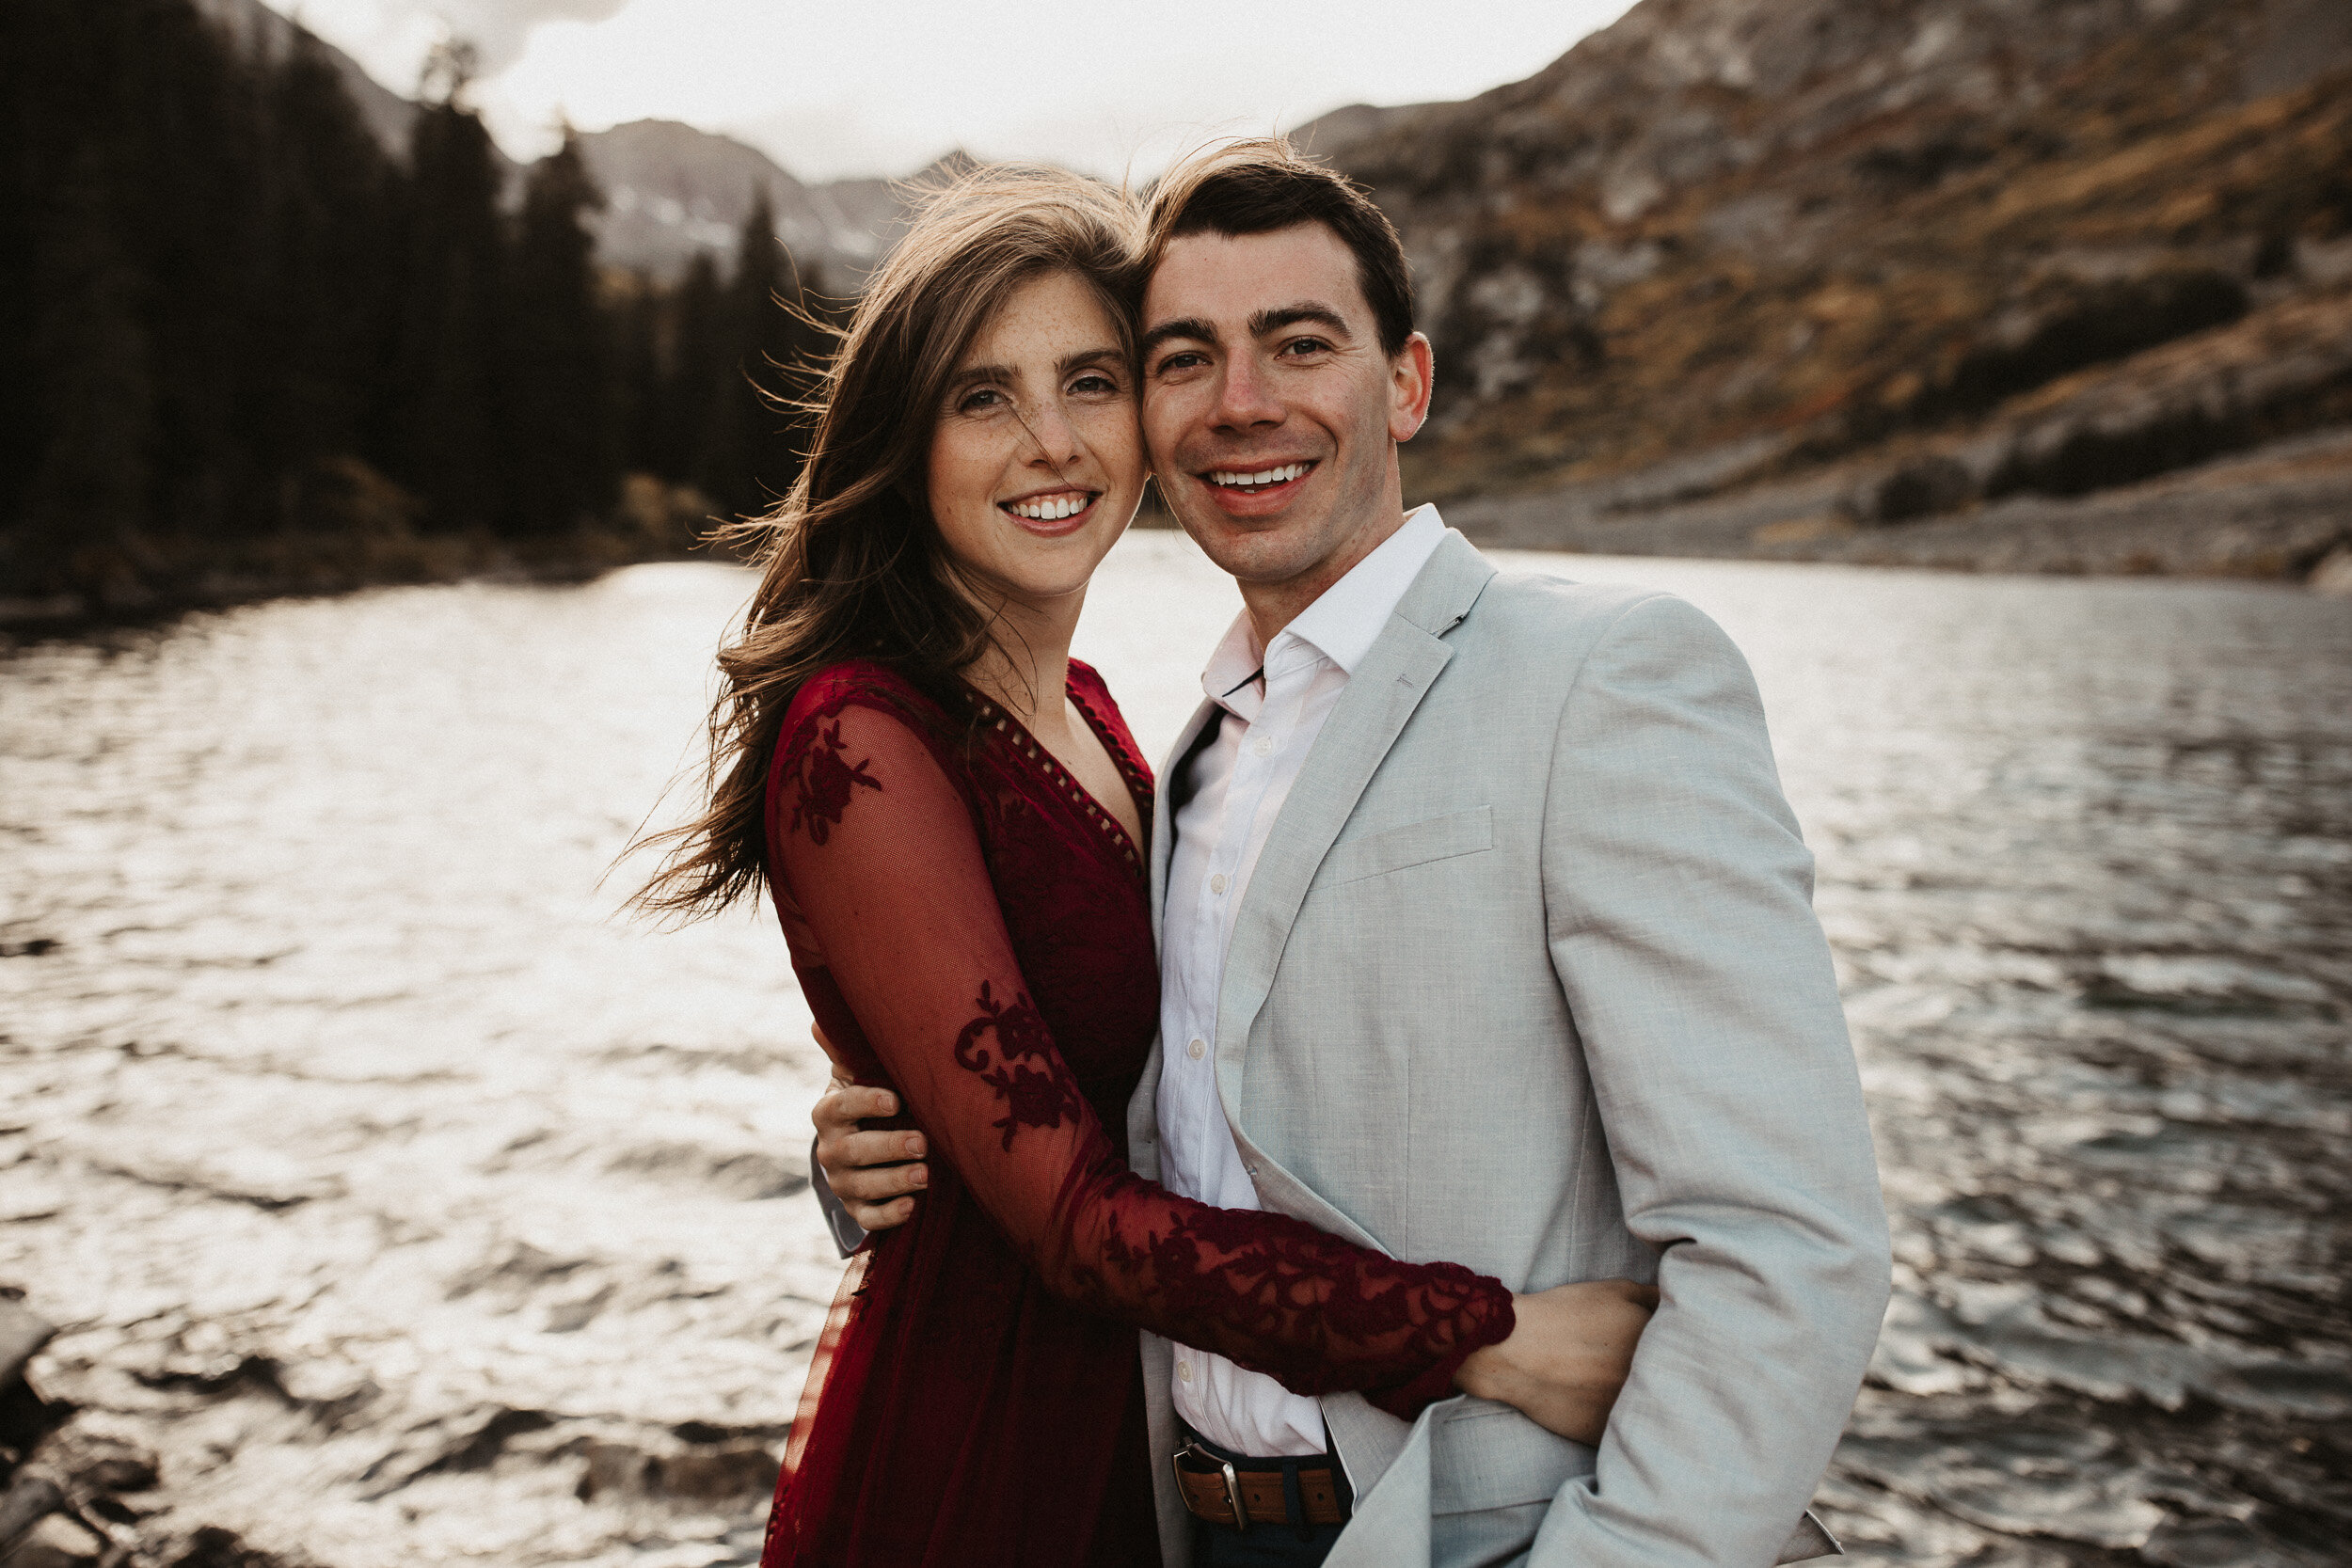 Claire_&_Matthew_Engagment_Breckenridge_Colorado_Fall_0218.jpg